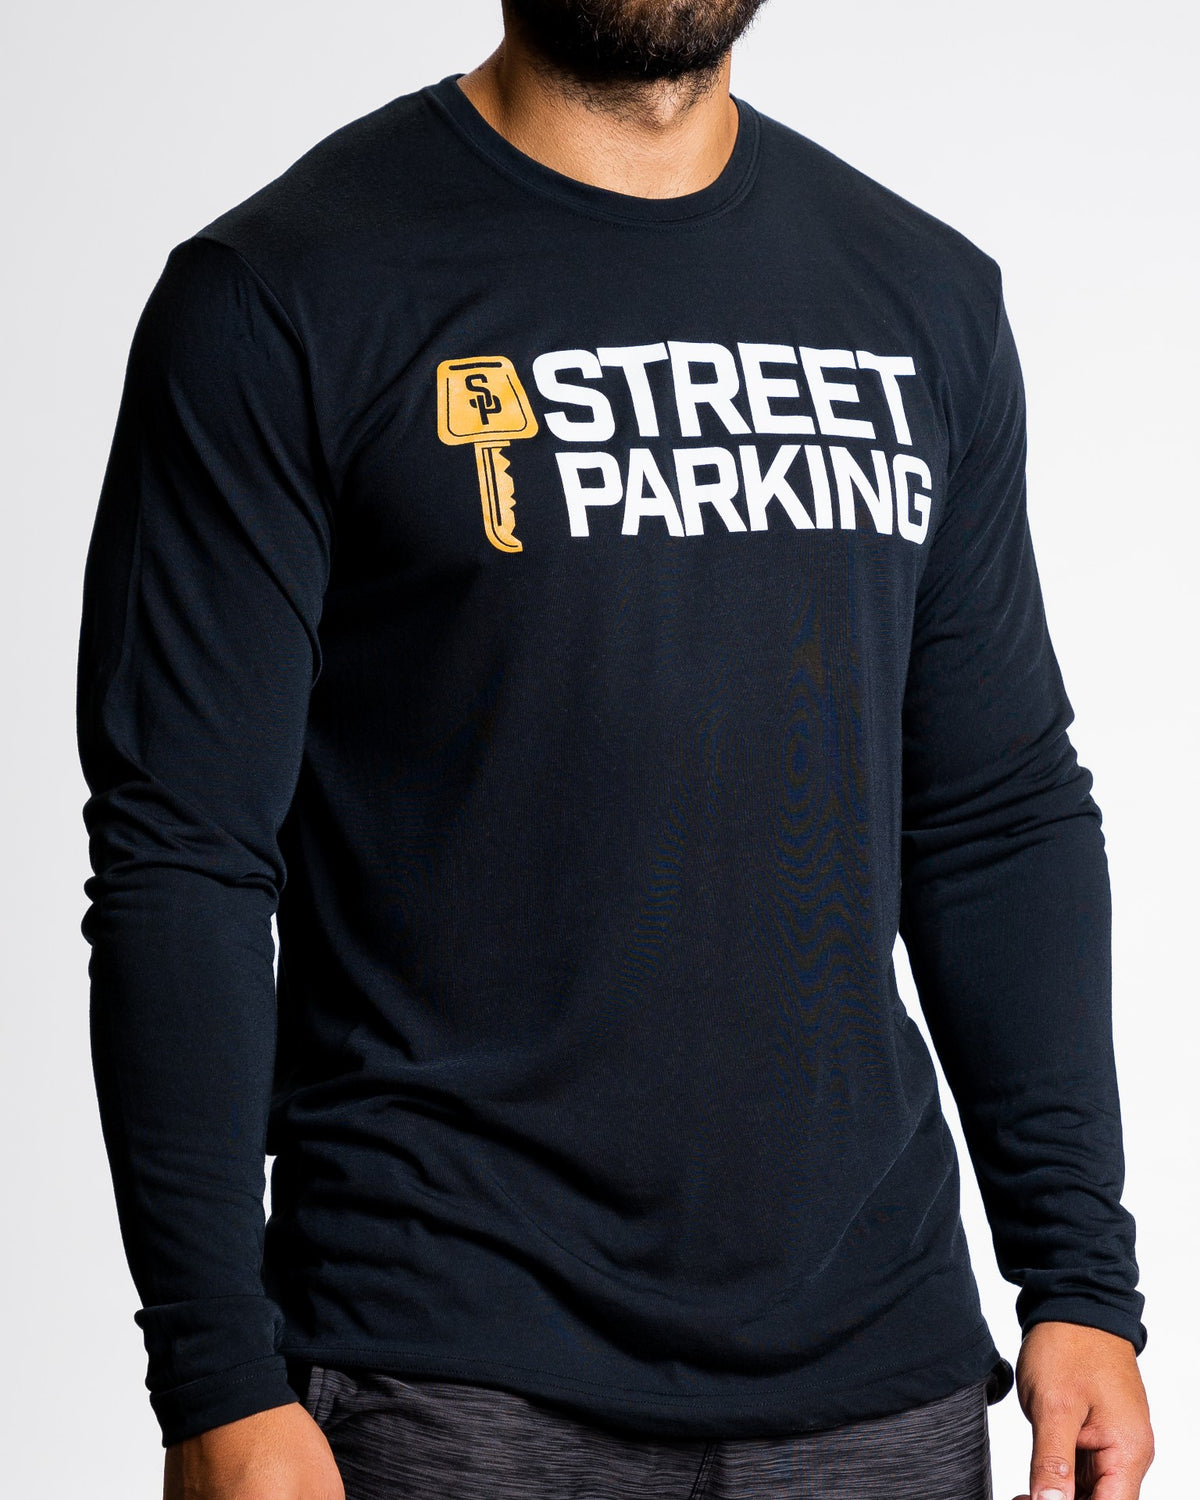 Street Parking Long Sleeve - Unisex - Street Parking